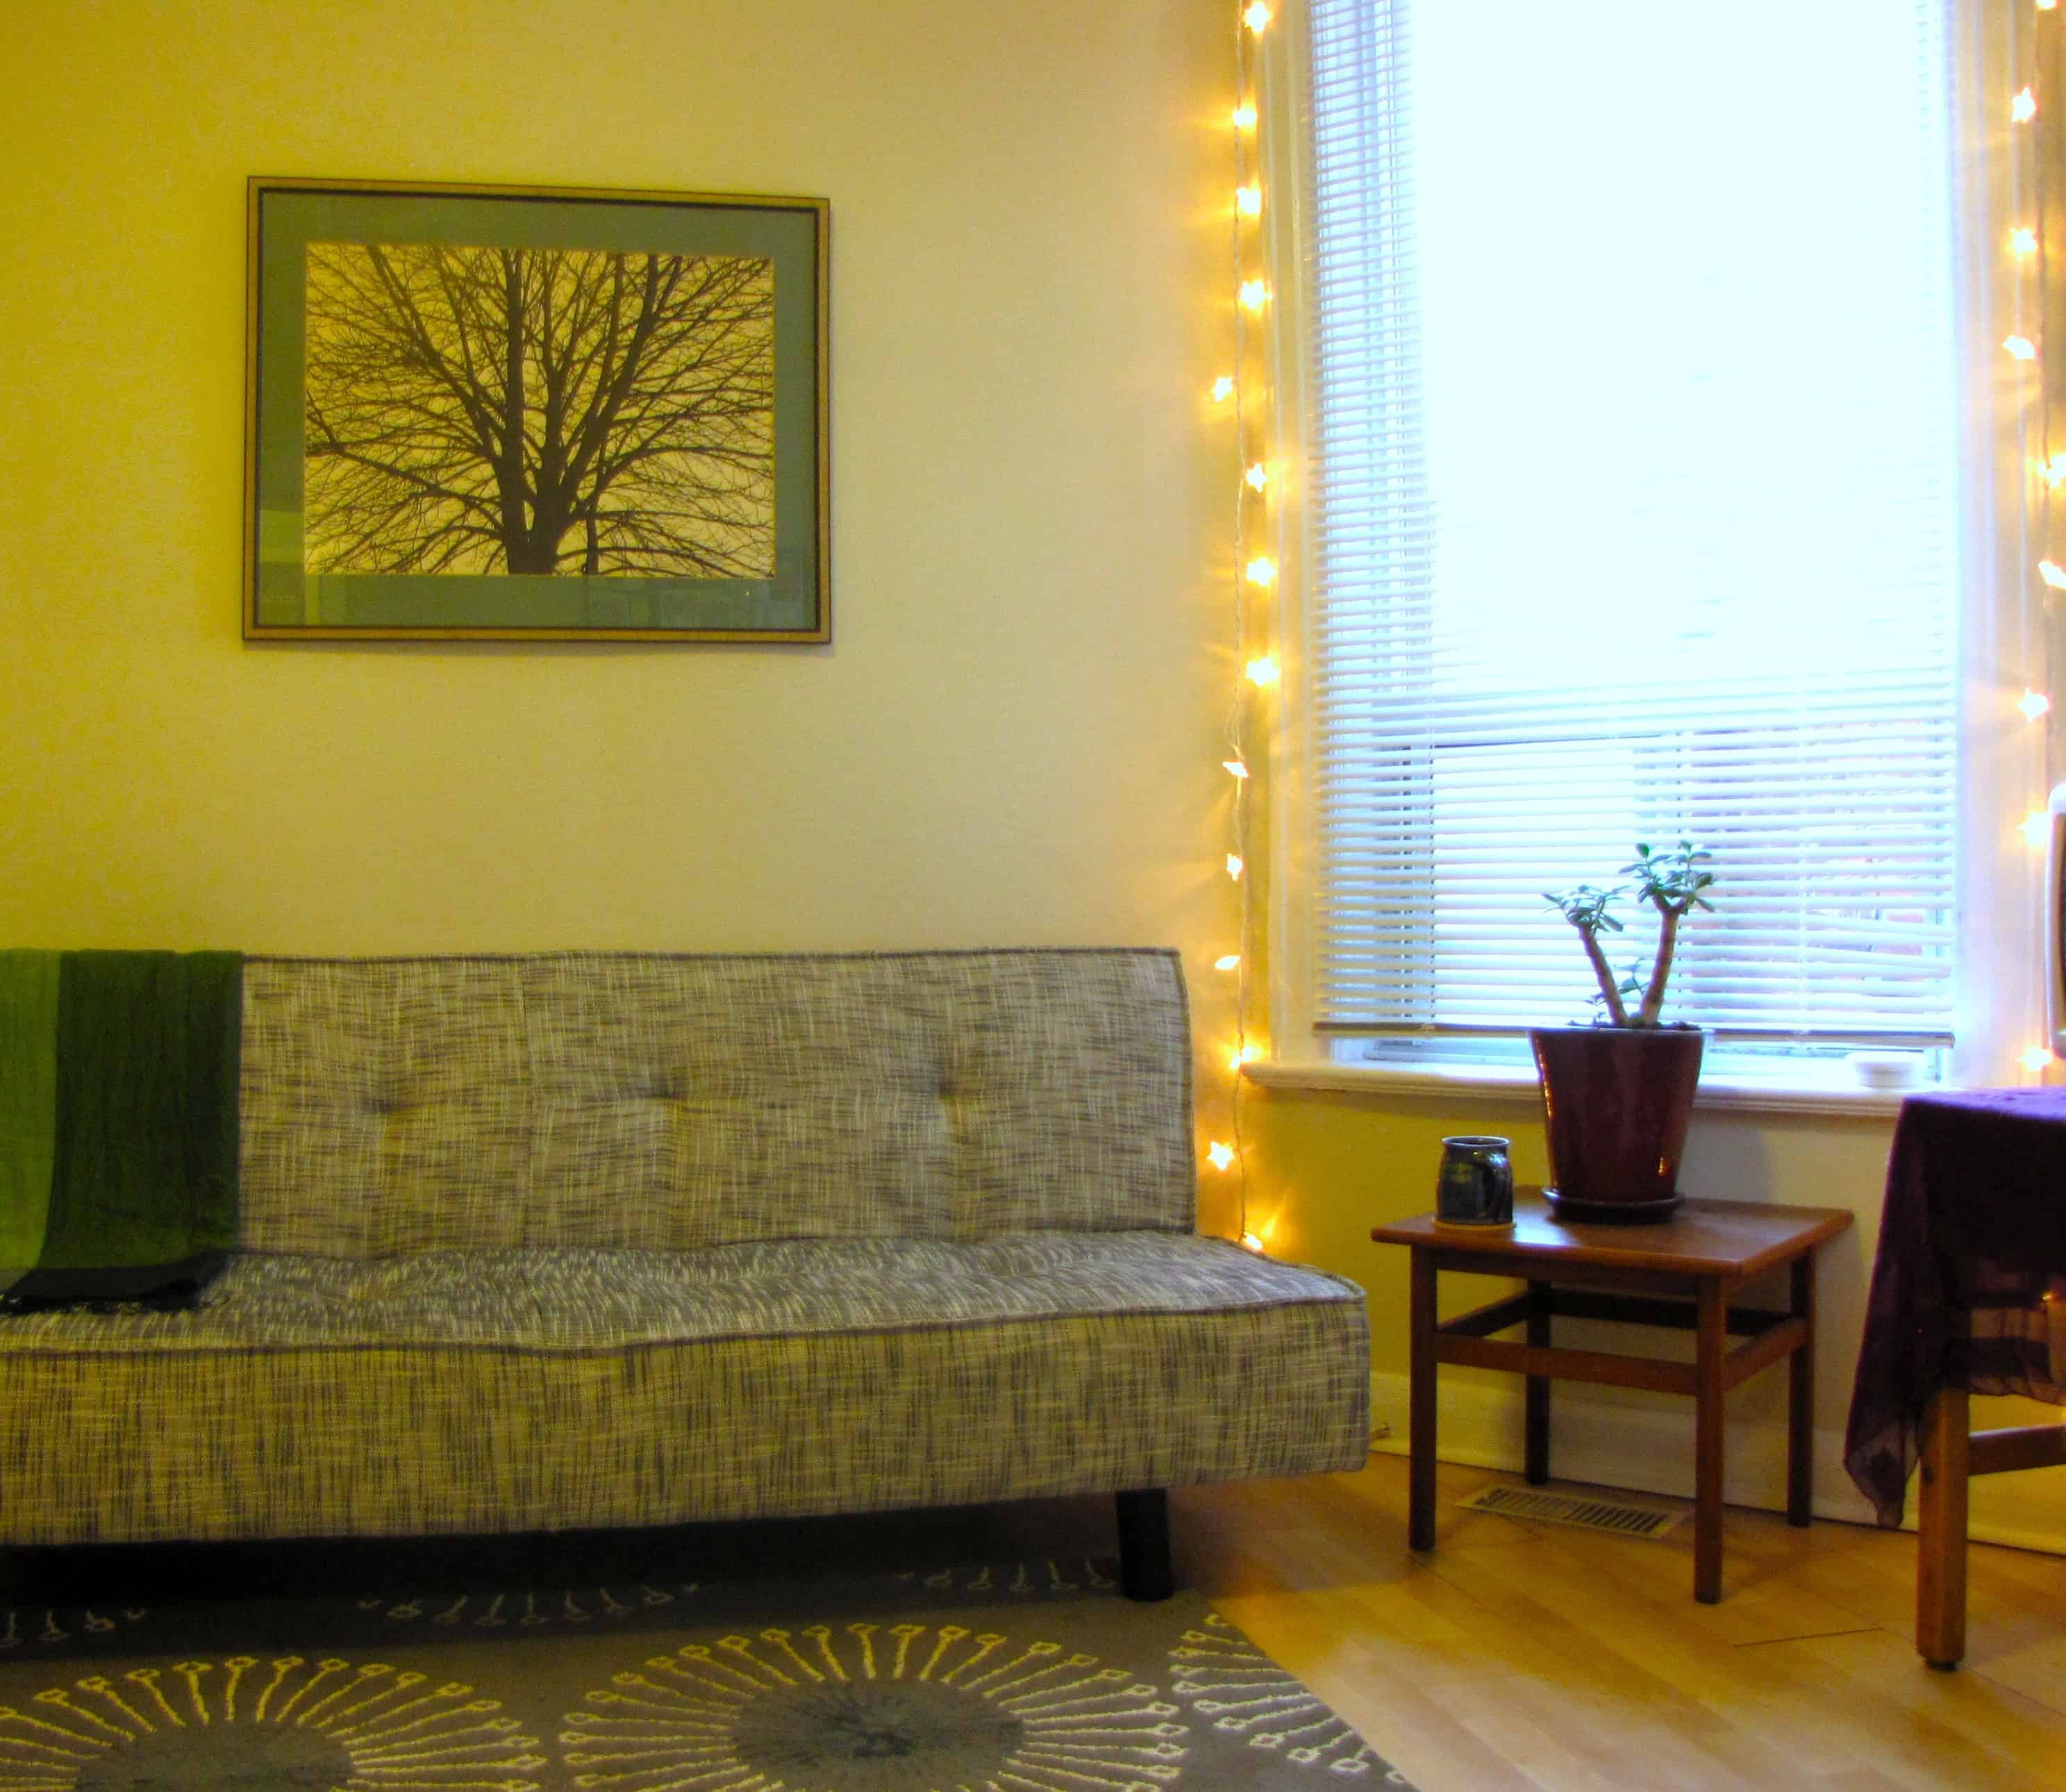 Apt Guide: Home Lighting Tips To Brighten Your Rental